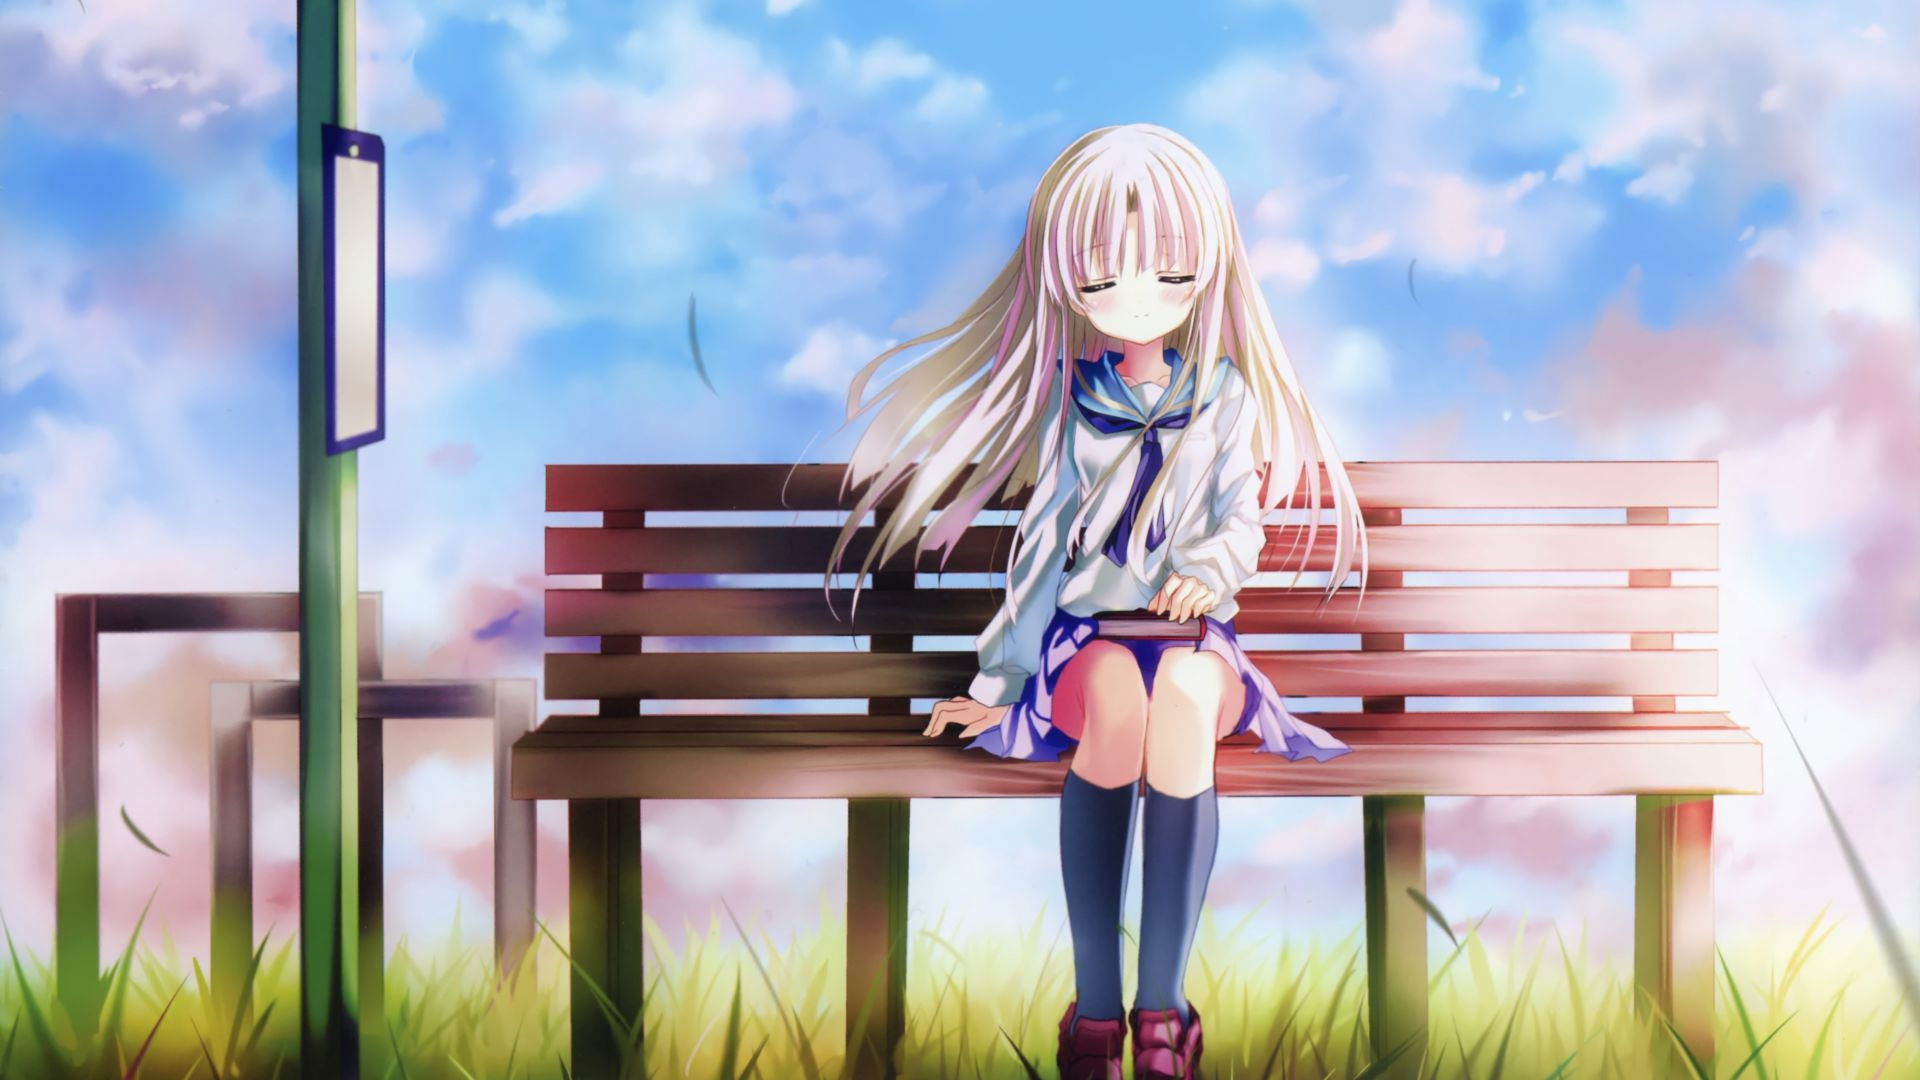 Superhero Hd Wallpapers Iphone Desktop Wallpaper Cute Girl Bench Sit Relaxed Anime